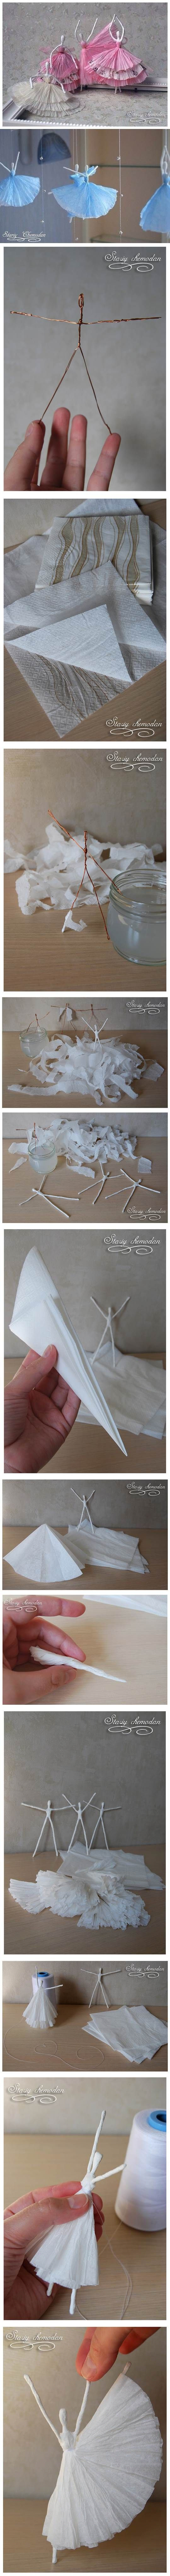 DIY Crafts for Girls - Napkin Paper Ballerina - So simple and crafty! Making these today with my 6 year old daugther!